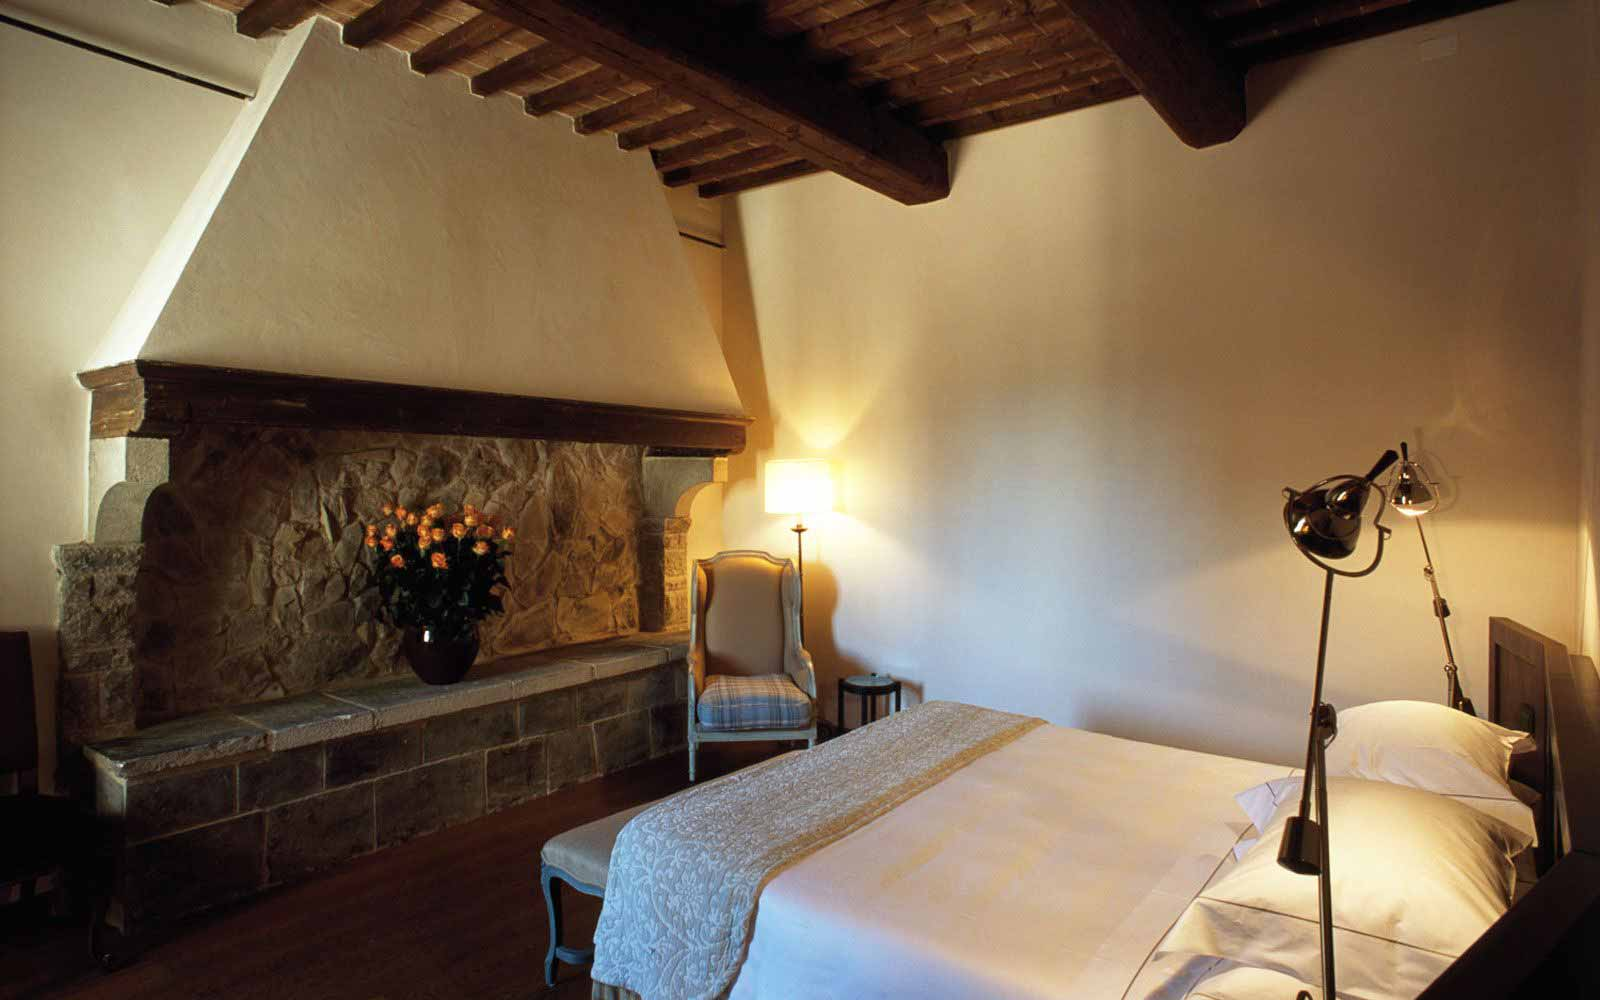 Executive Suite at Castel Monastero Tuscan Resort & Spa